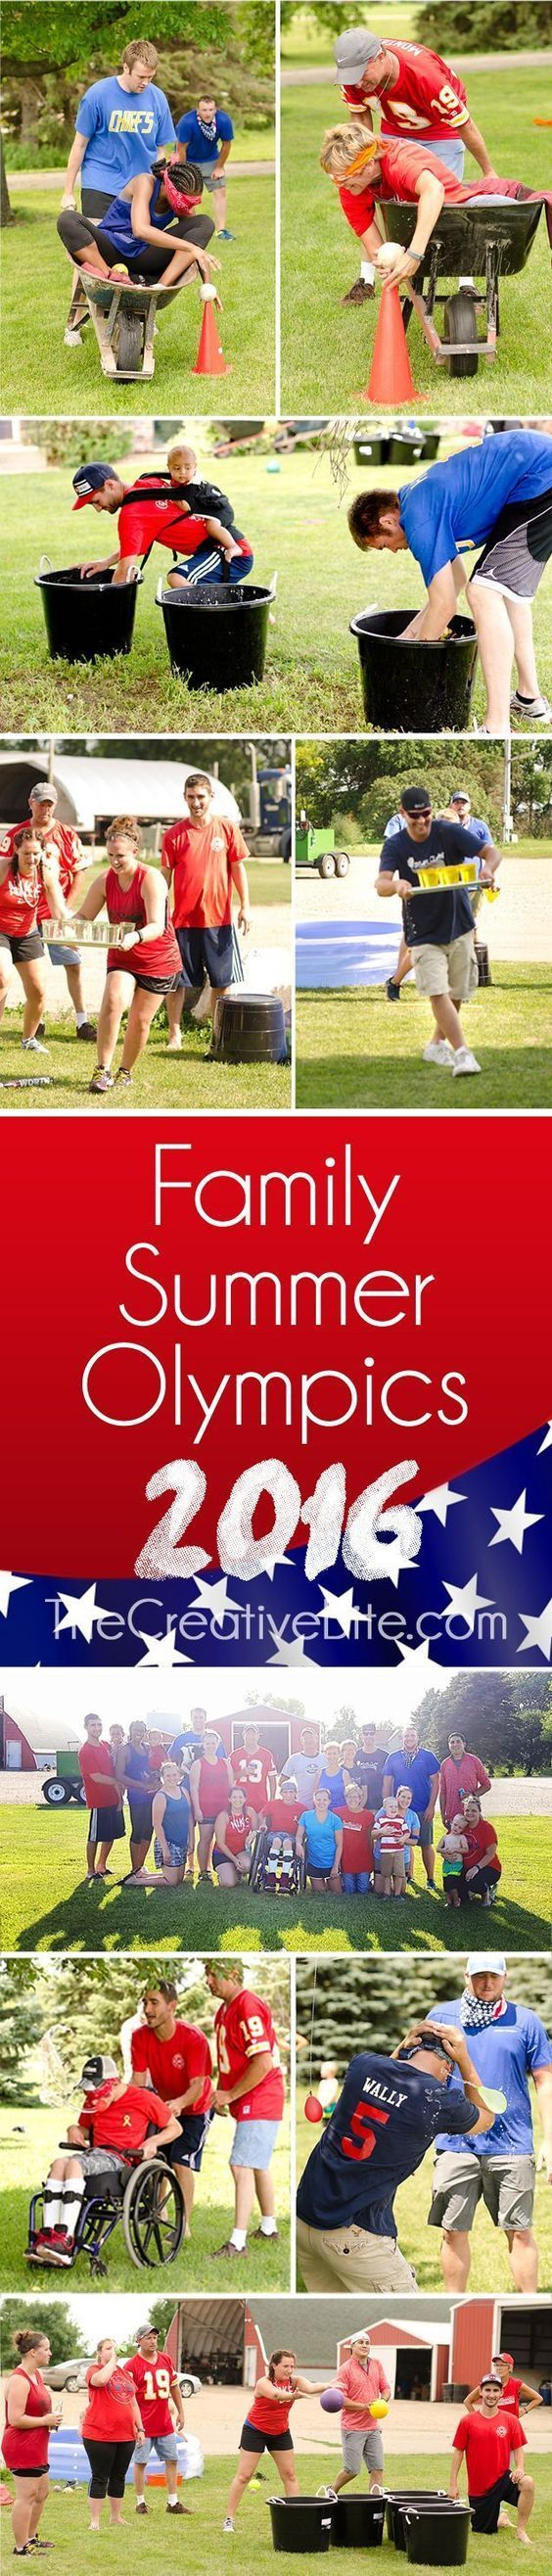 Family Summer Olympics 2016 - Backyard Games